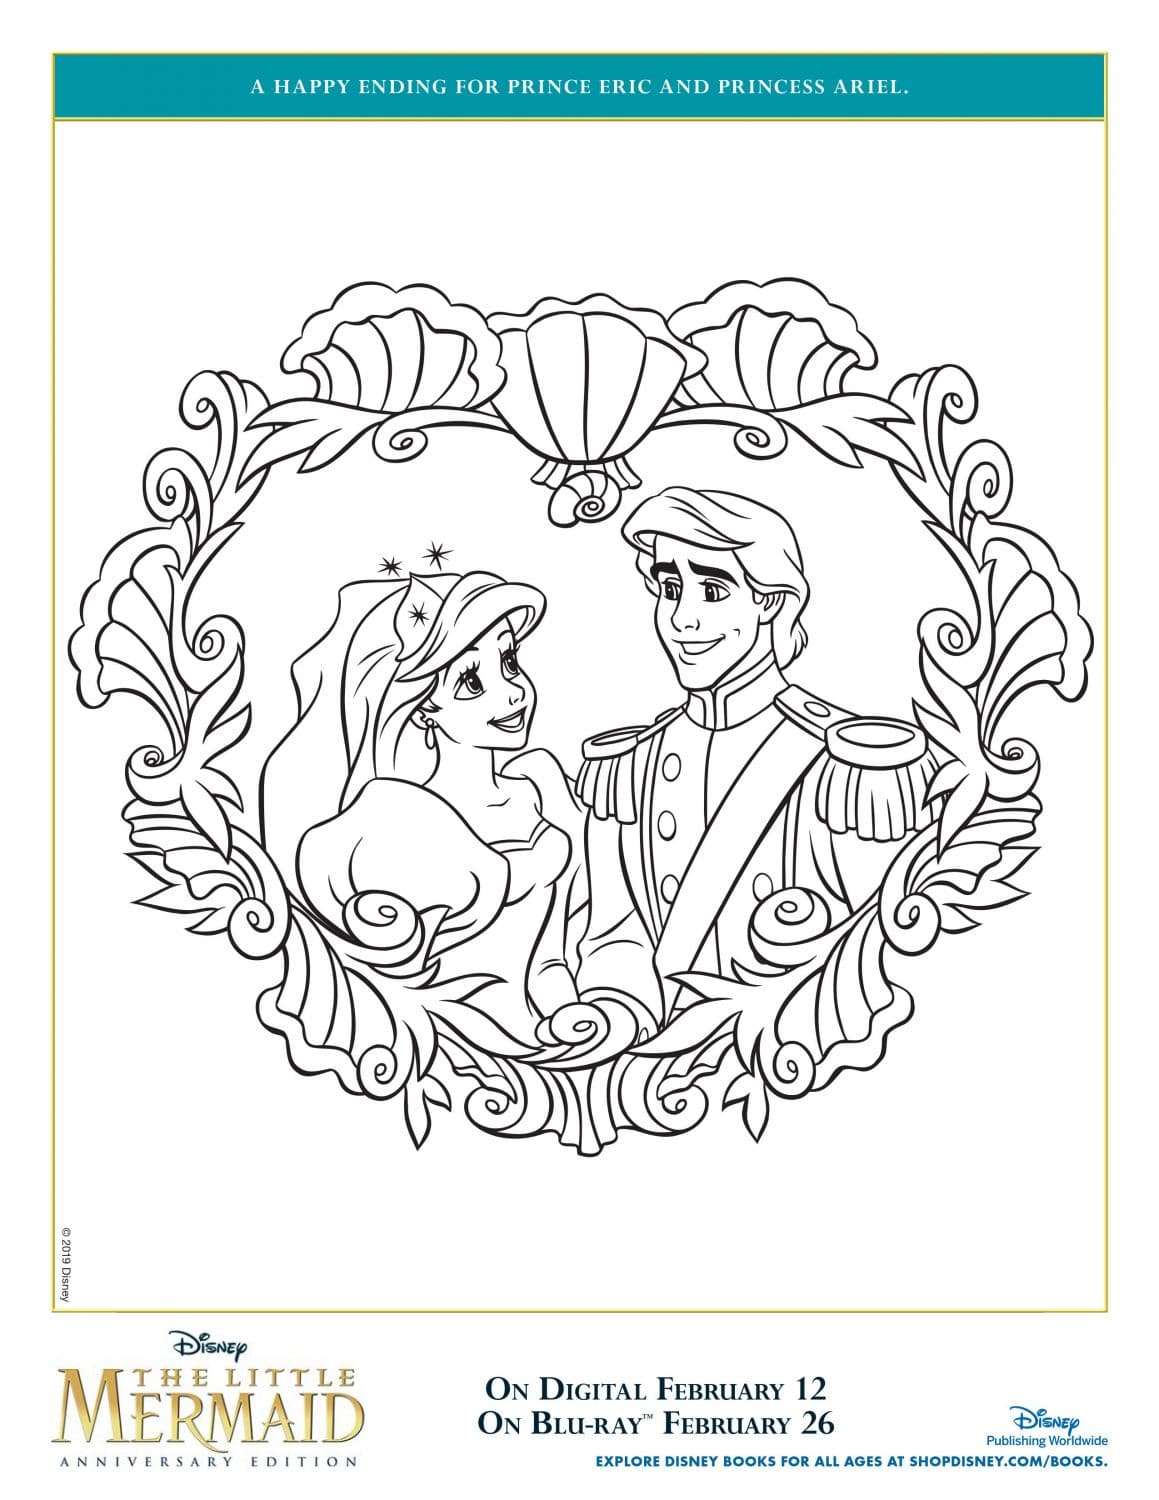 Eric and Ariel Wedding The Little Mermaid Coloring Page